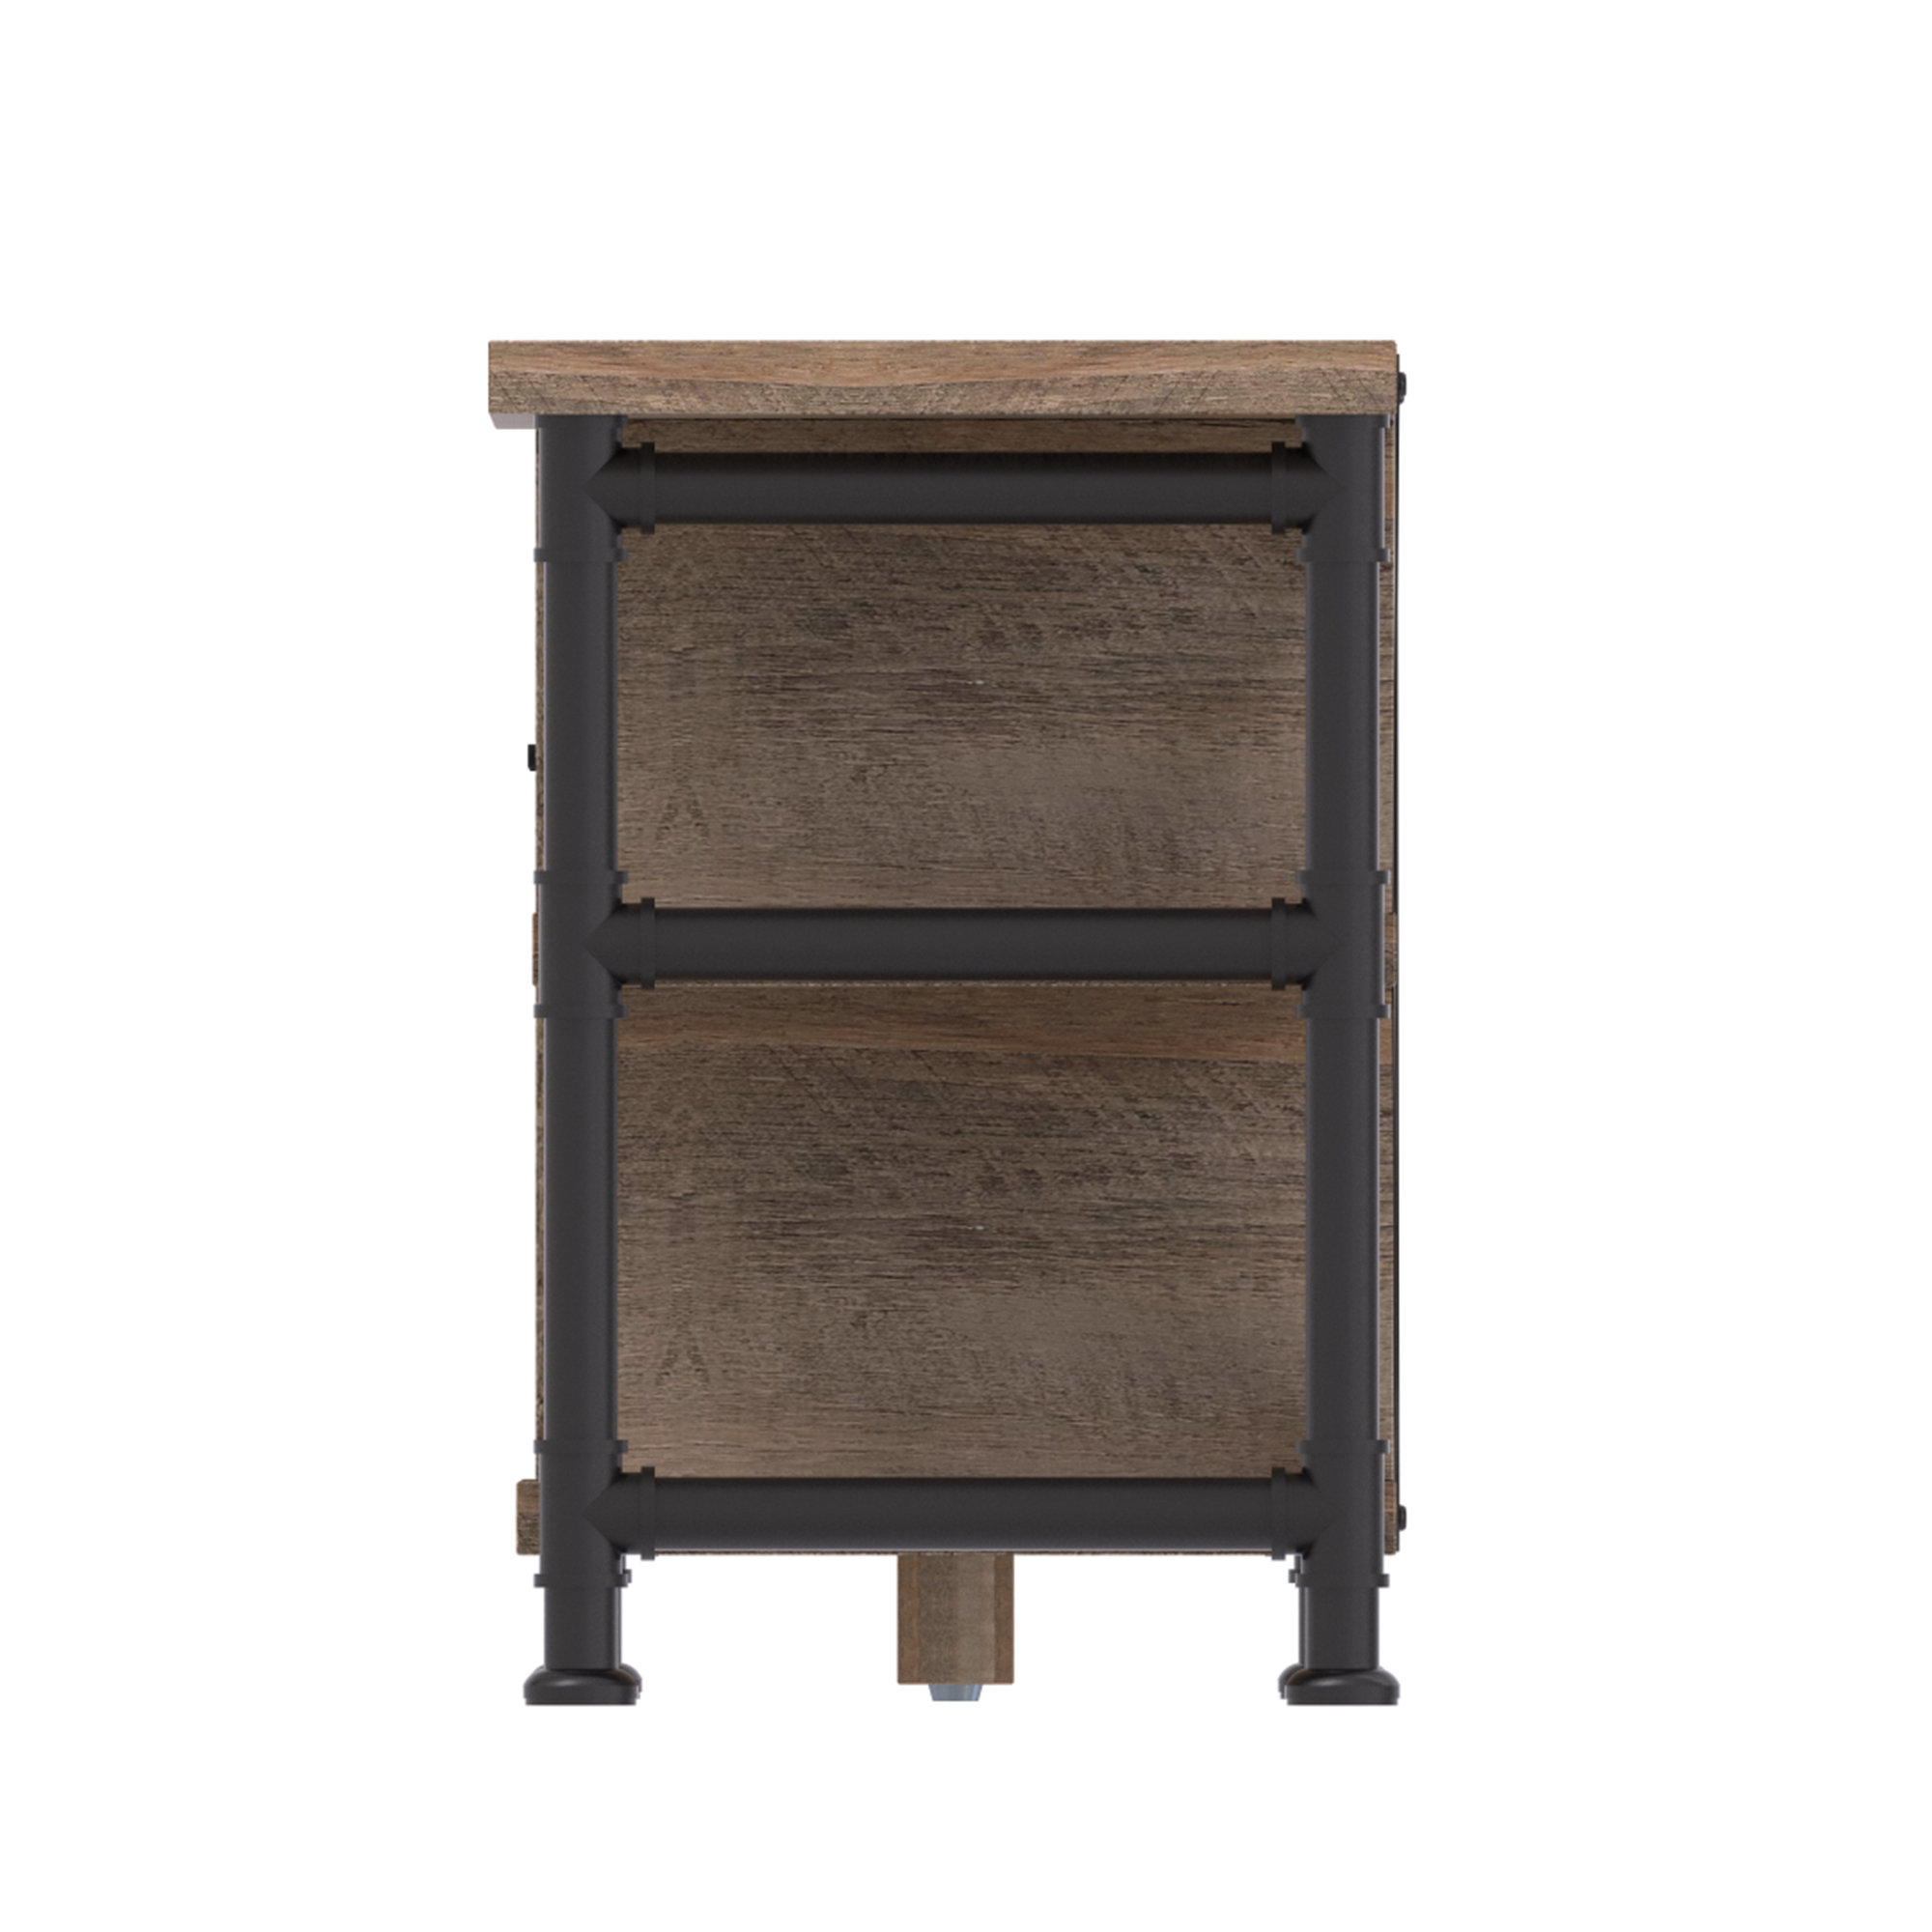 Rustic Tv Stand Fireplaces You'll Love | Wayfair (View 17 of 20)